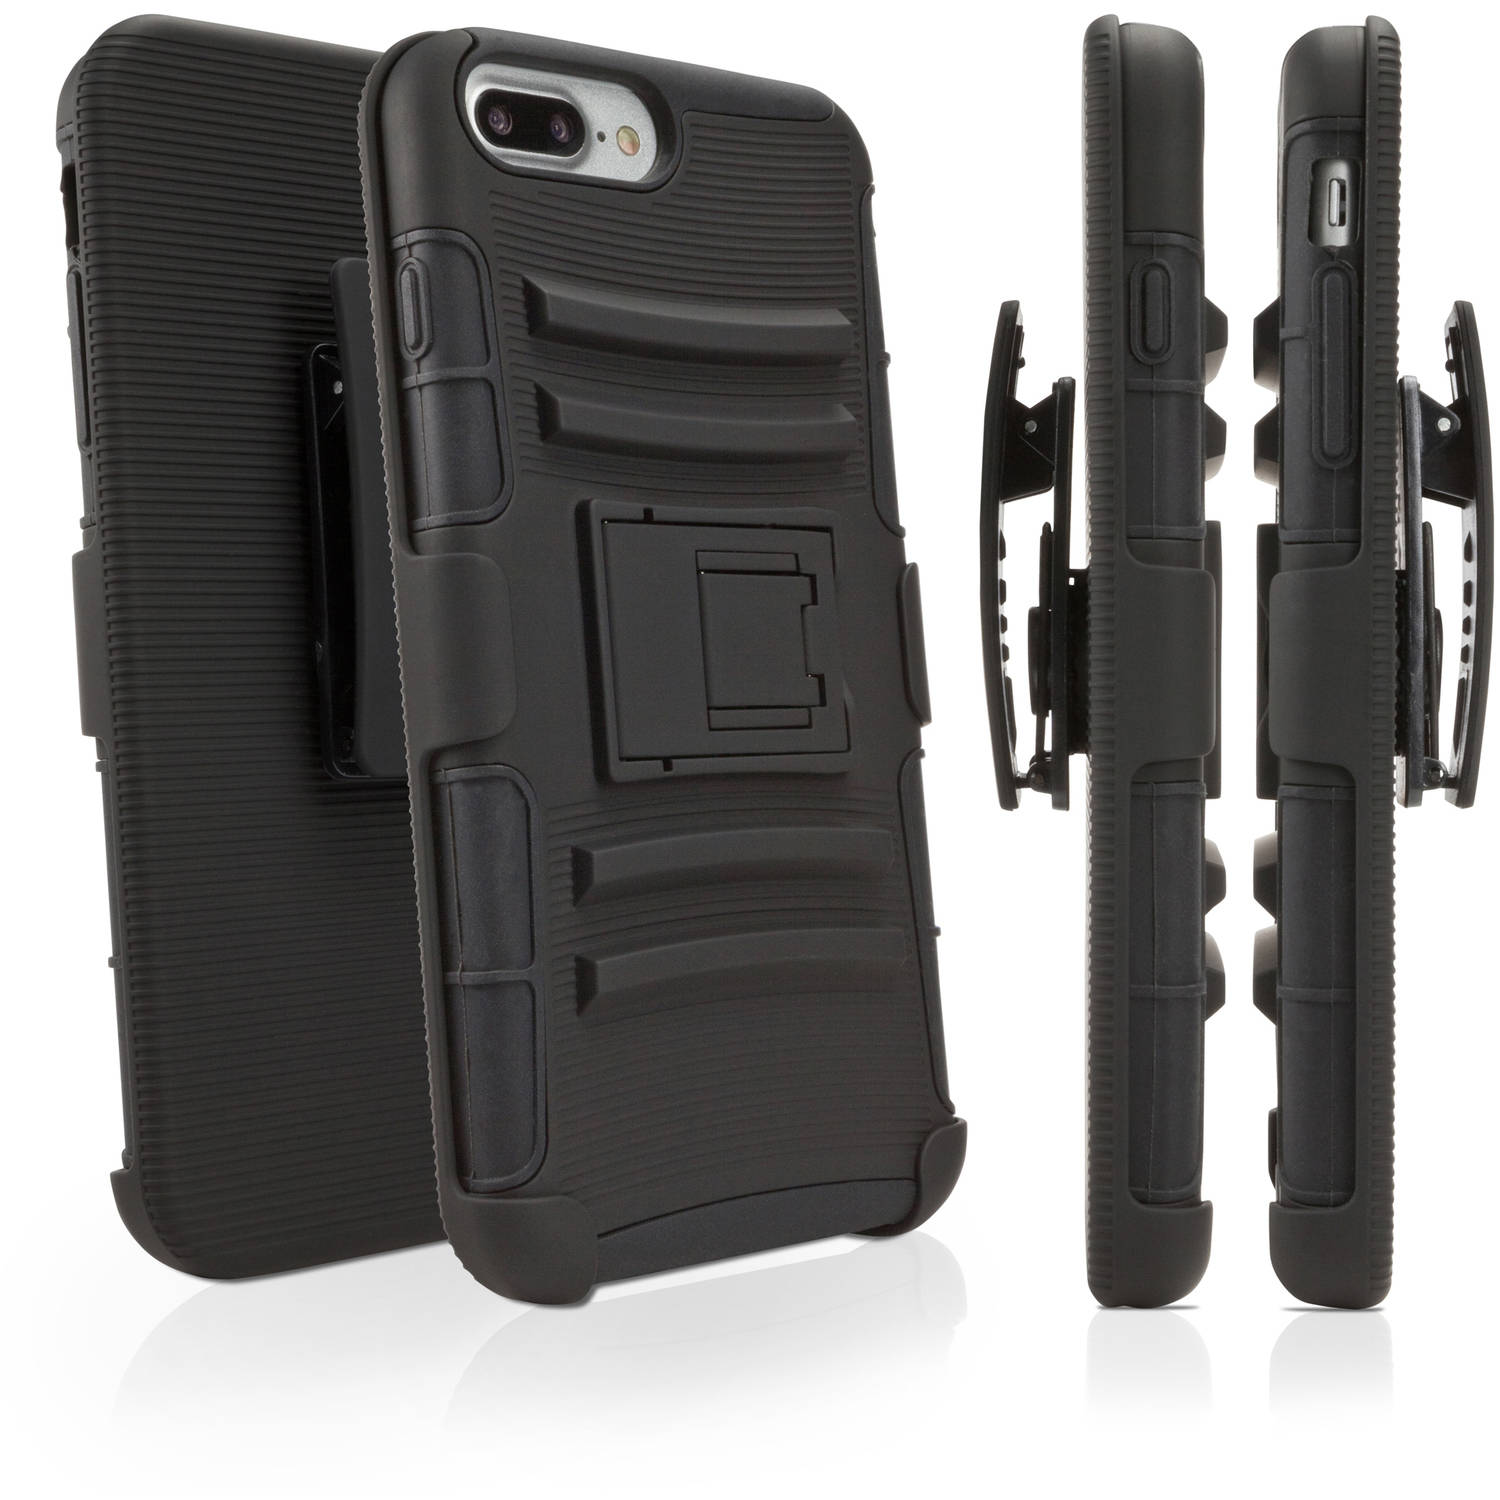 BoxWave Dual+ Max Holster Shell Cover and Belt Clip Holster with Kickstand for Apple iPhone 7 Plus, Black